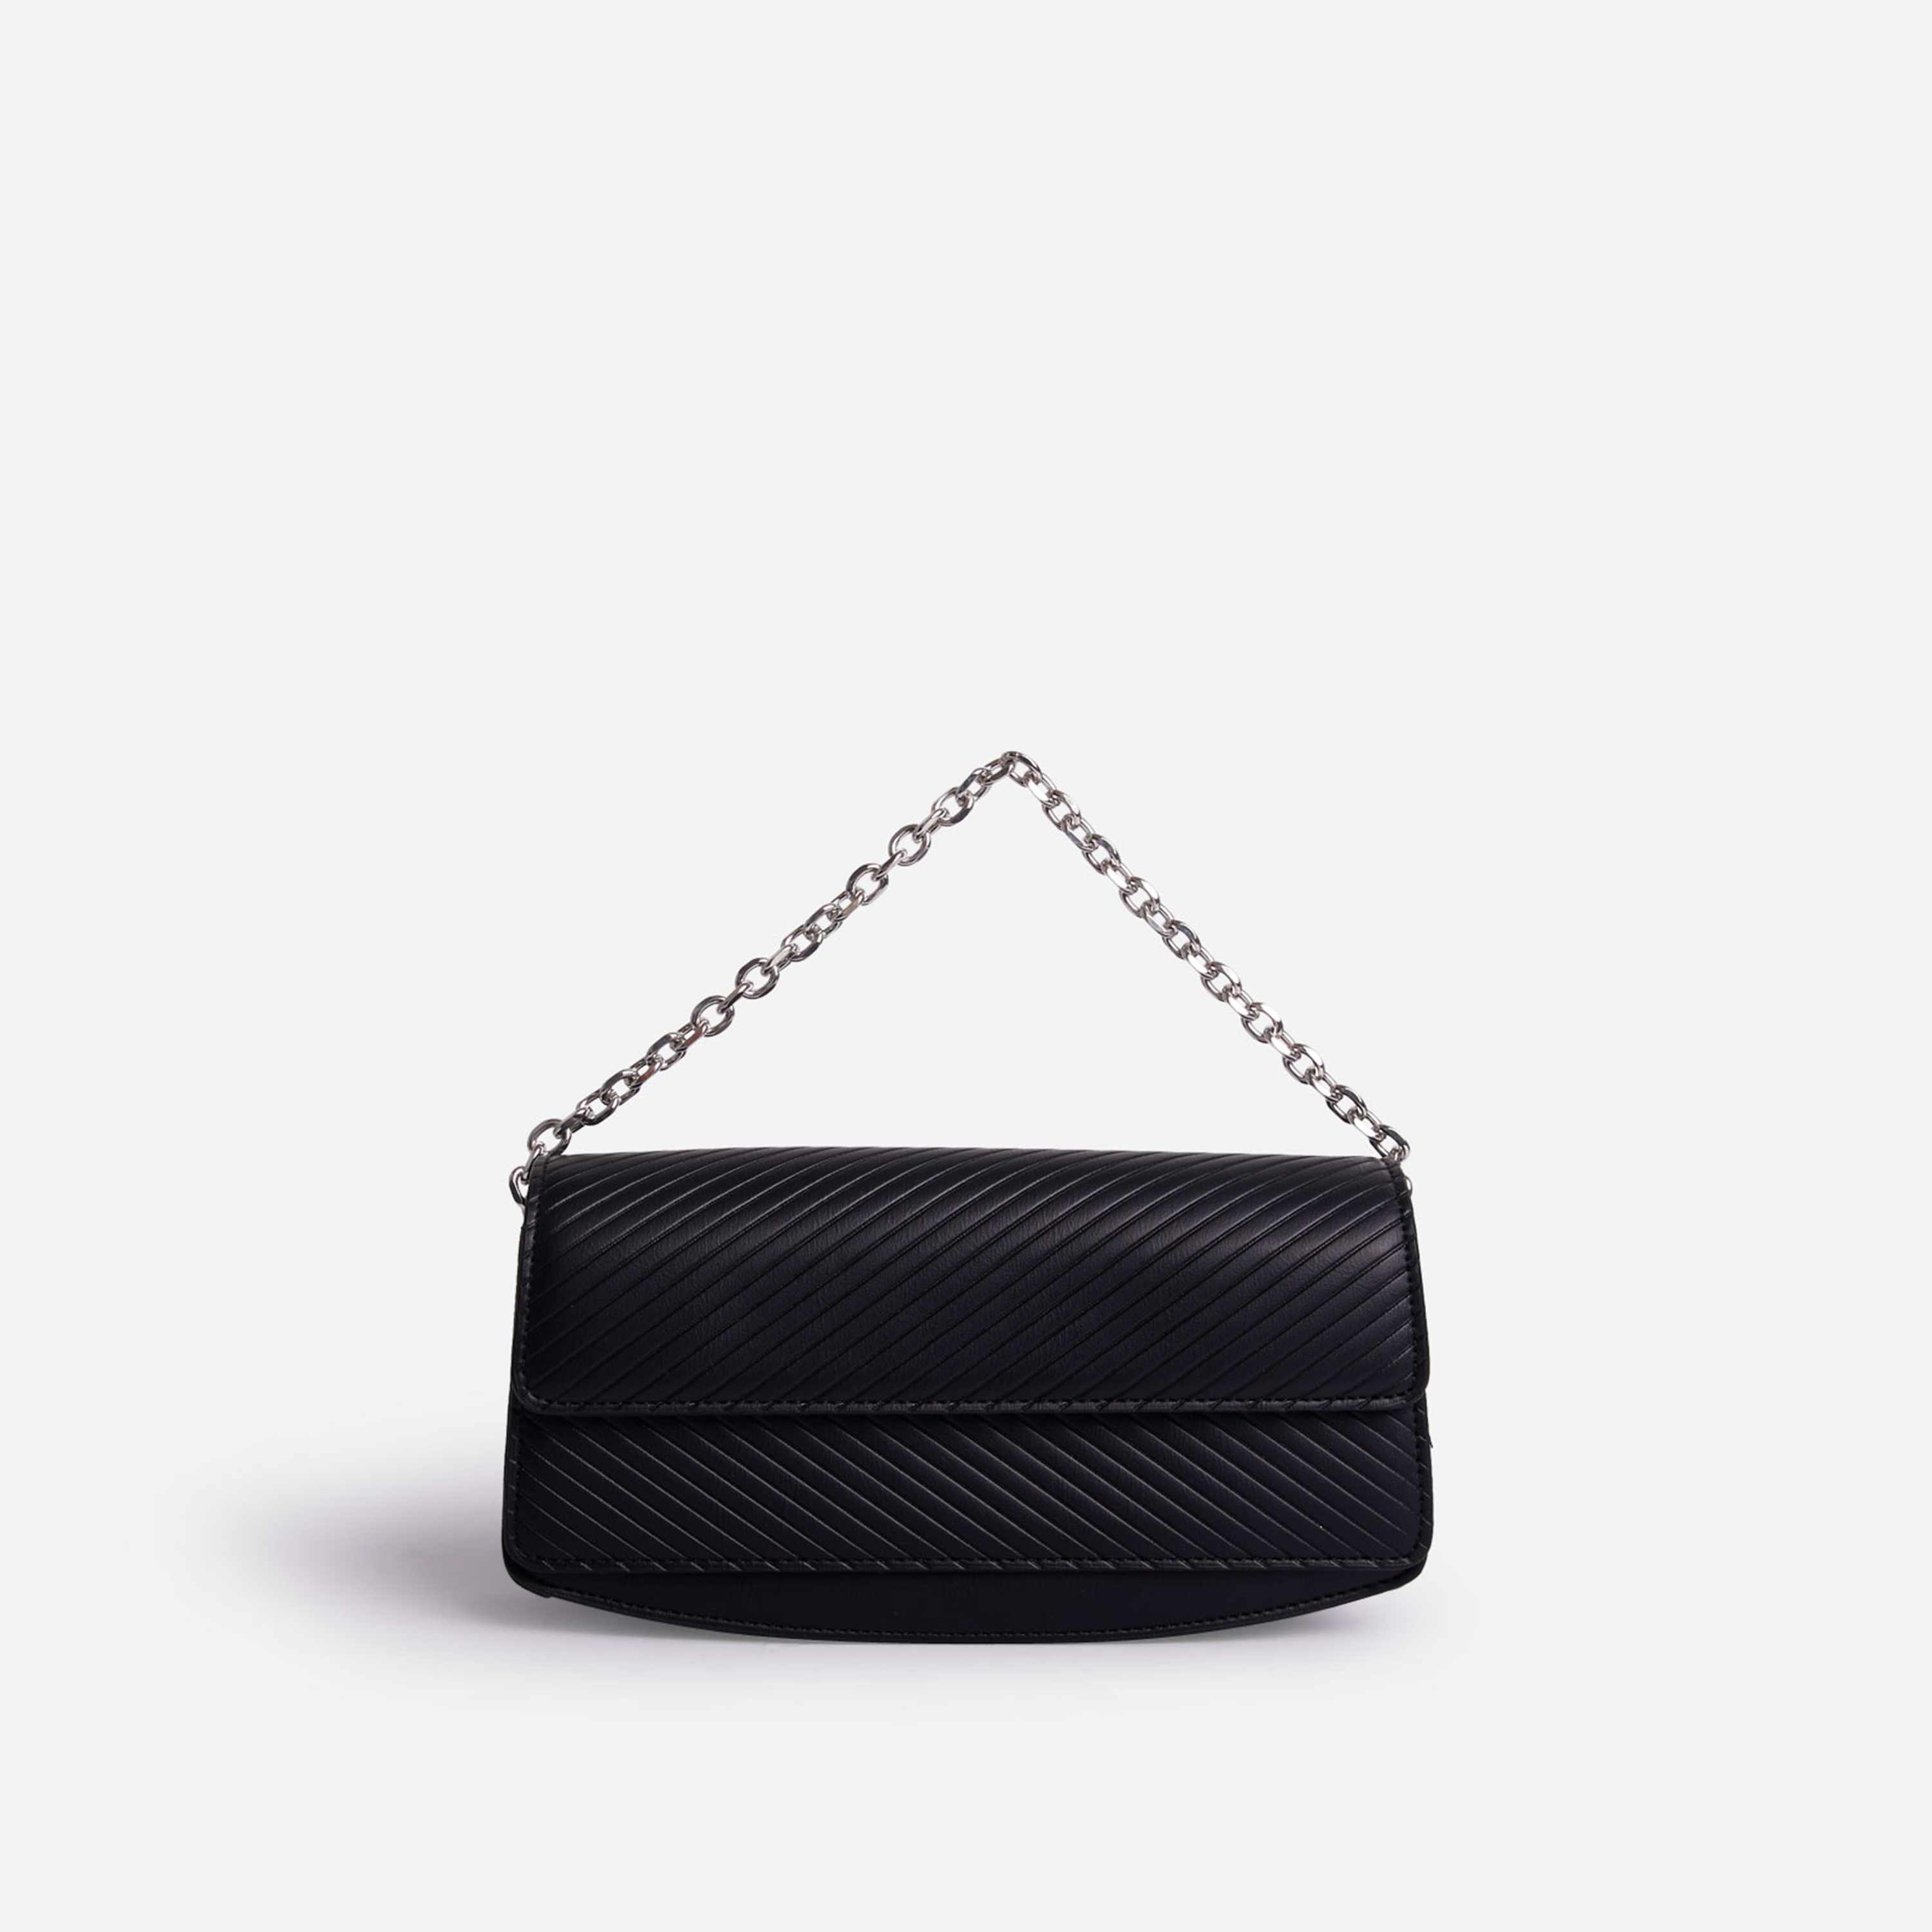 Carbo Rectangular Chain Detail Cross Body Bag In Black Faux Leather